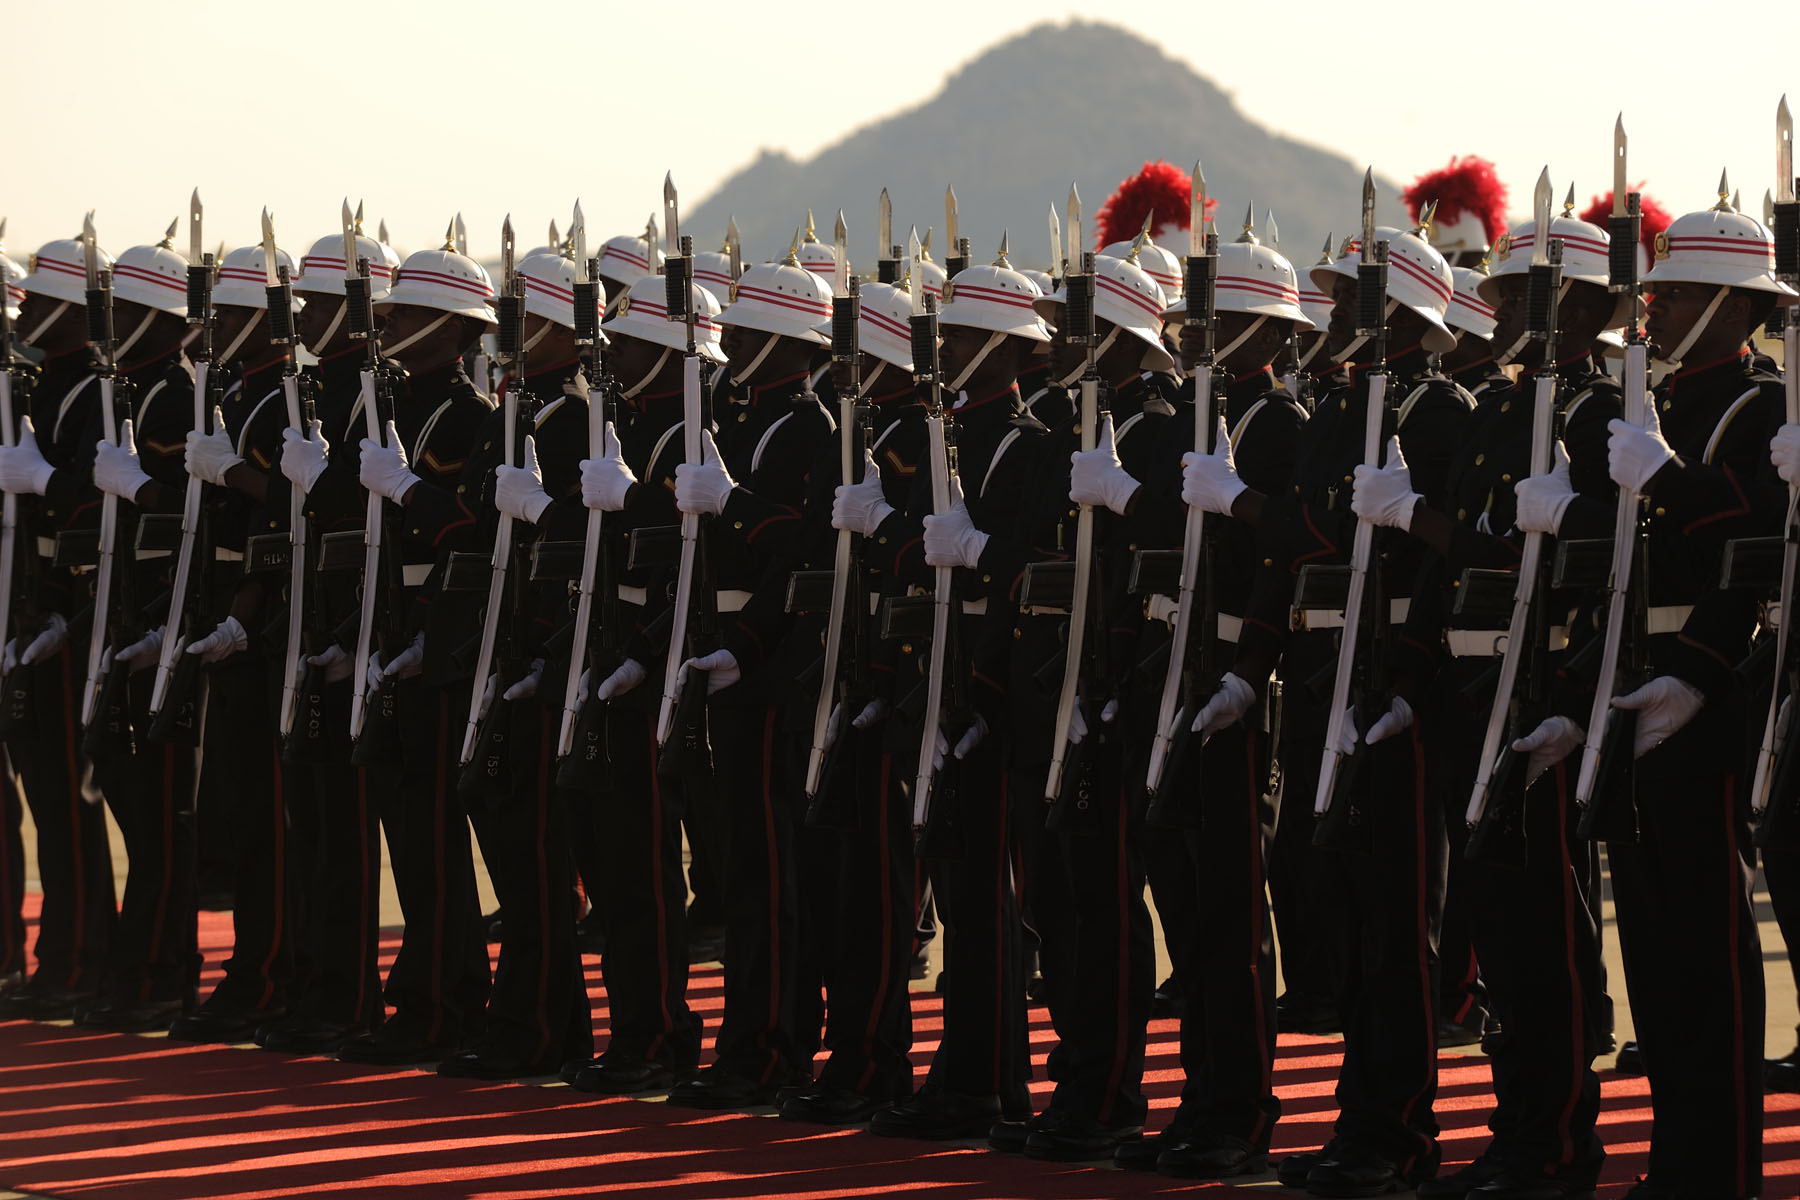 During the ceremony, the Governor General inspected the guard of honour and received a 21-gun salute.